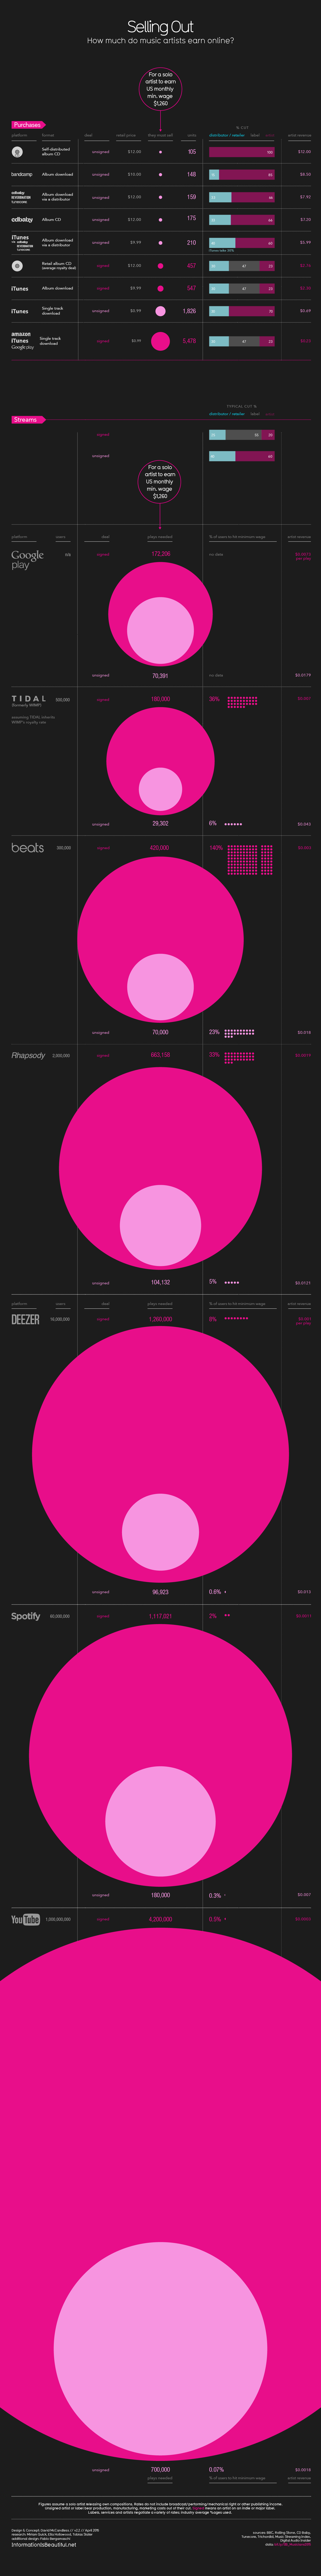 Image was taken from  http://nextshark.com/tidal-pays-artists-spotify/